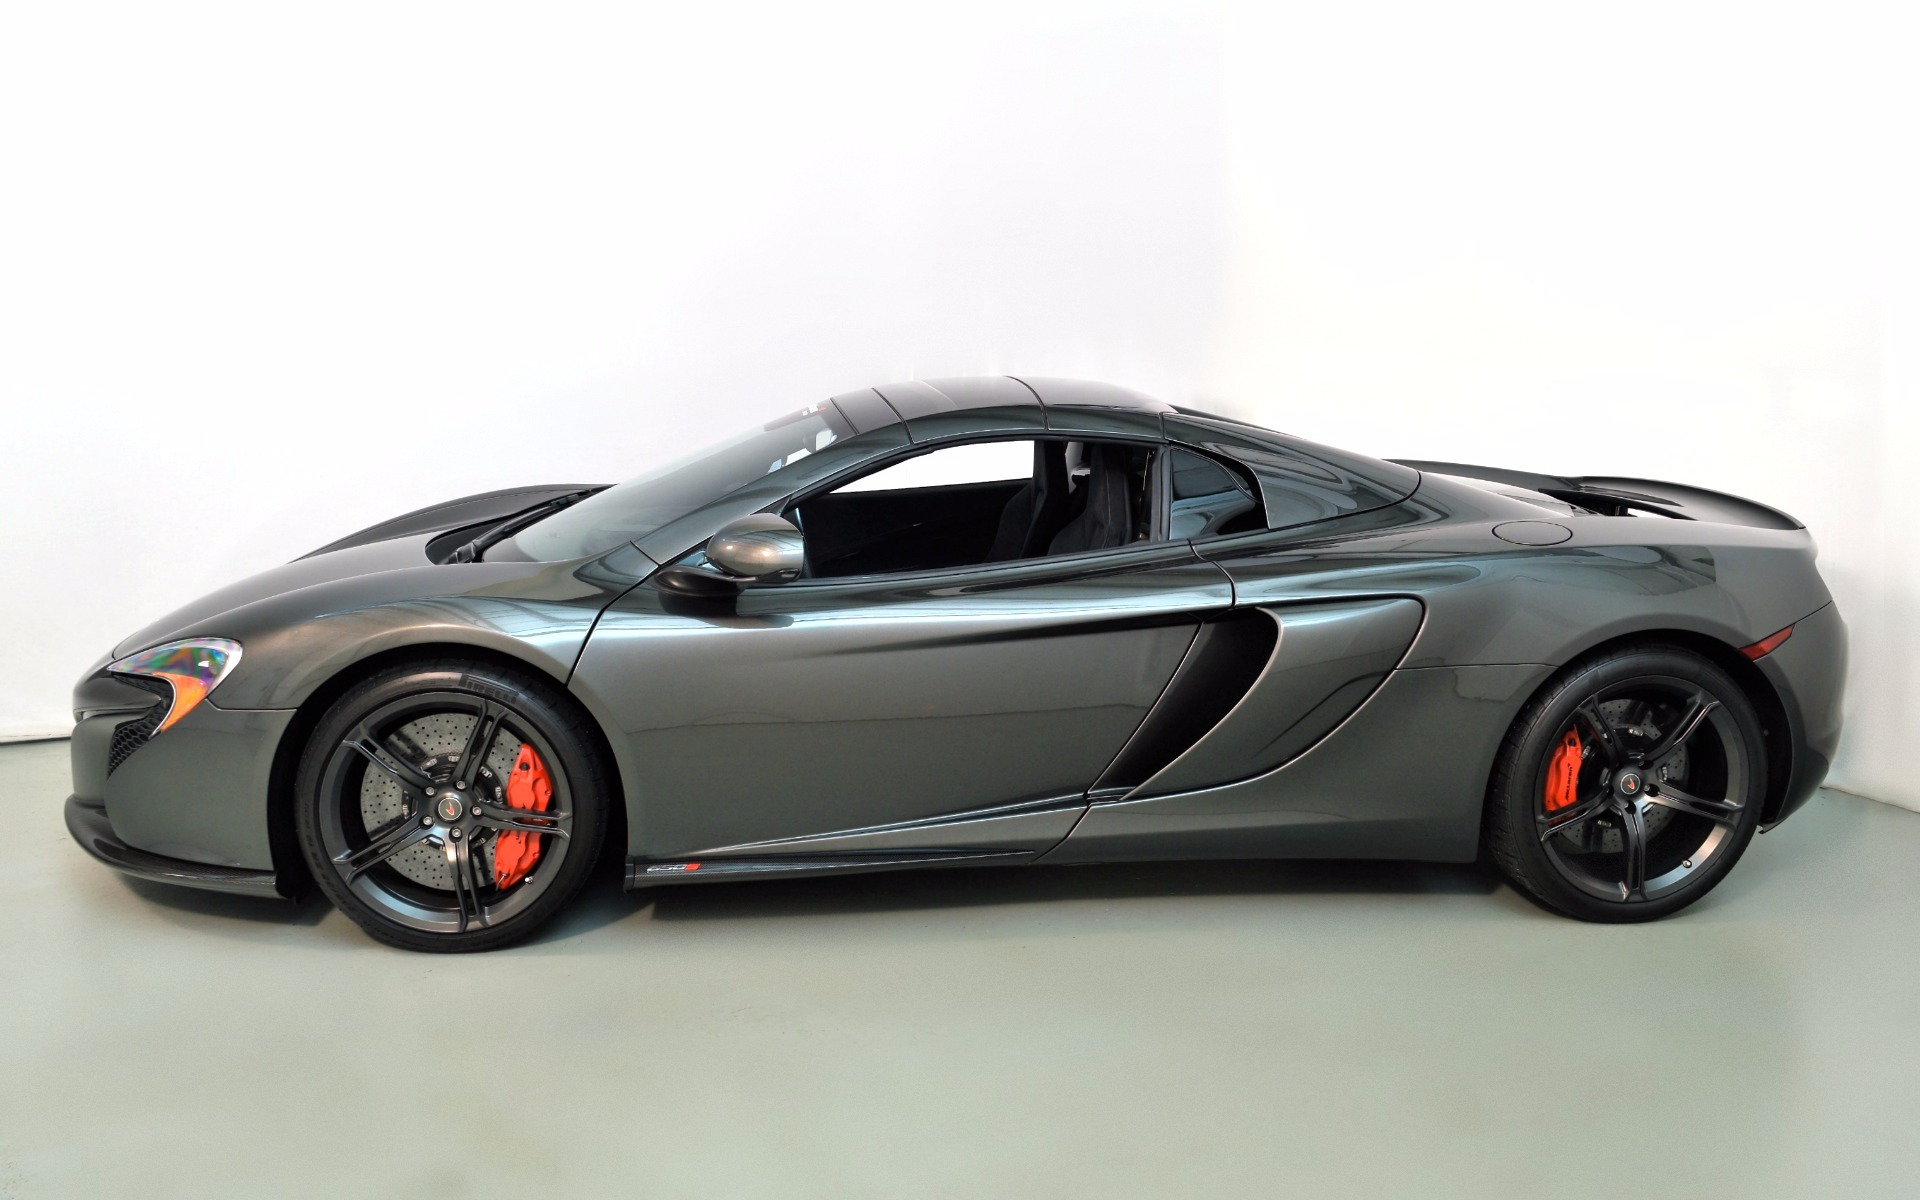 2015 mclaren 650s spider for sale in norwell ma 003536 mclaren boston. Black Bedroom Furniture Sets. Home Design Ideas